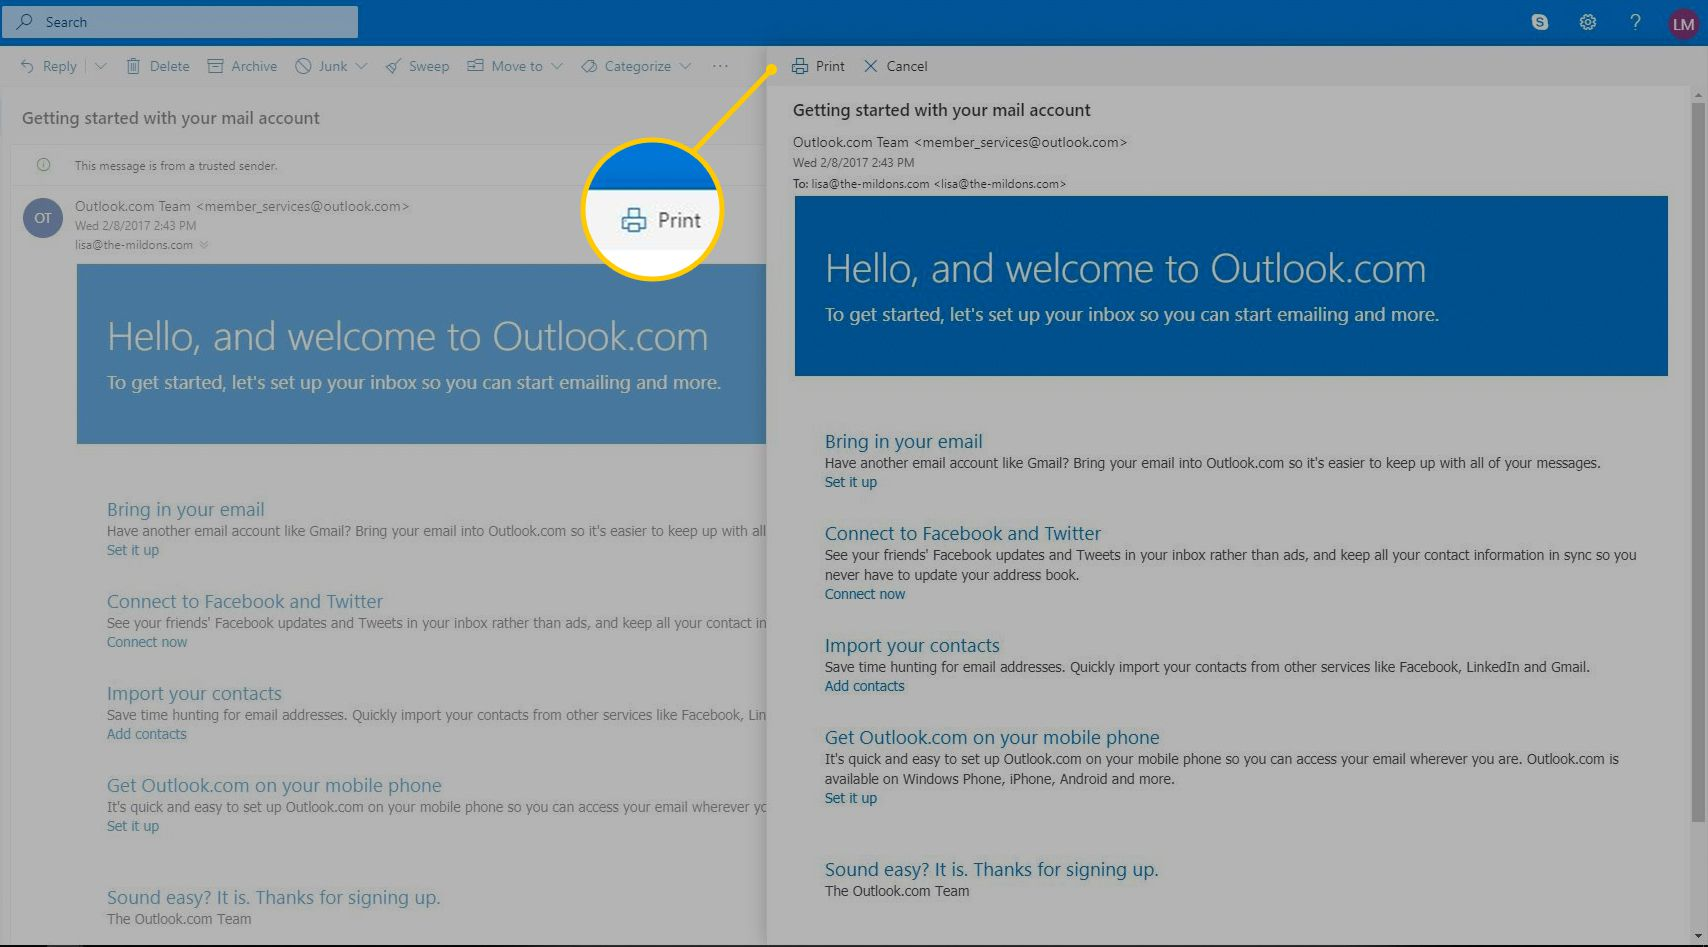 How to Print Email from Outlook or Outlook com